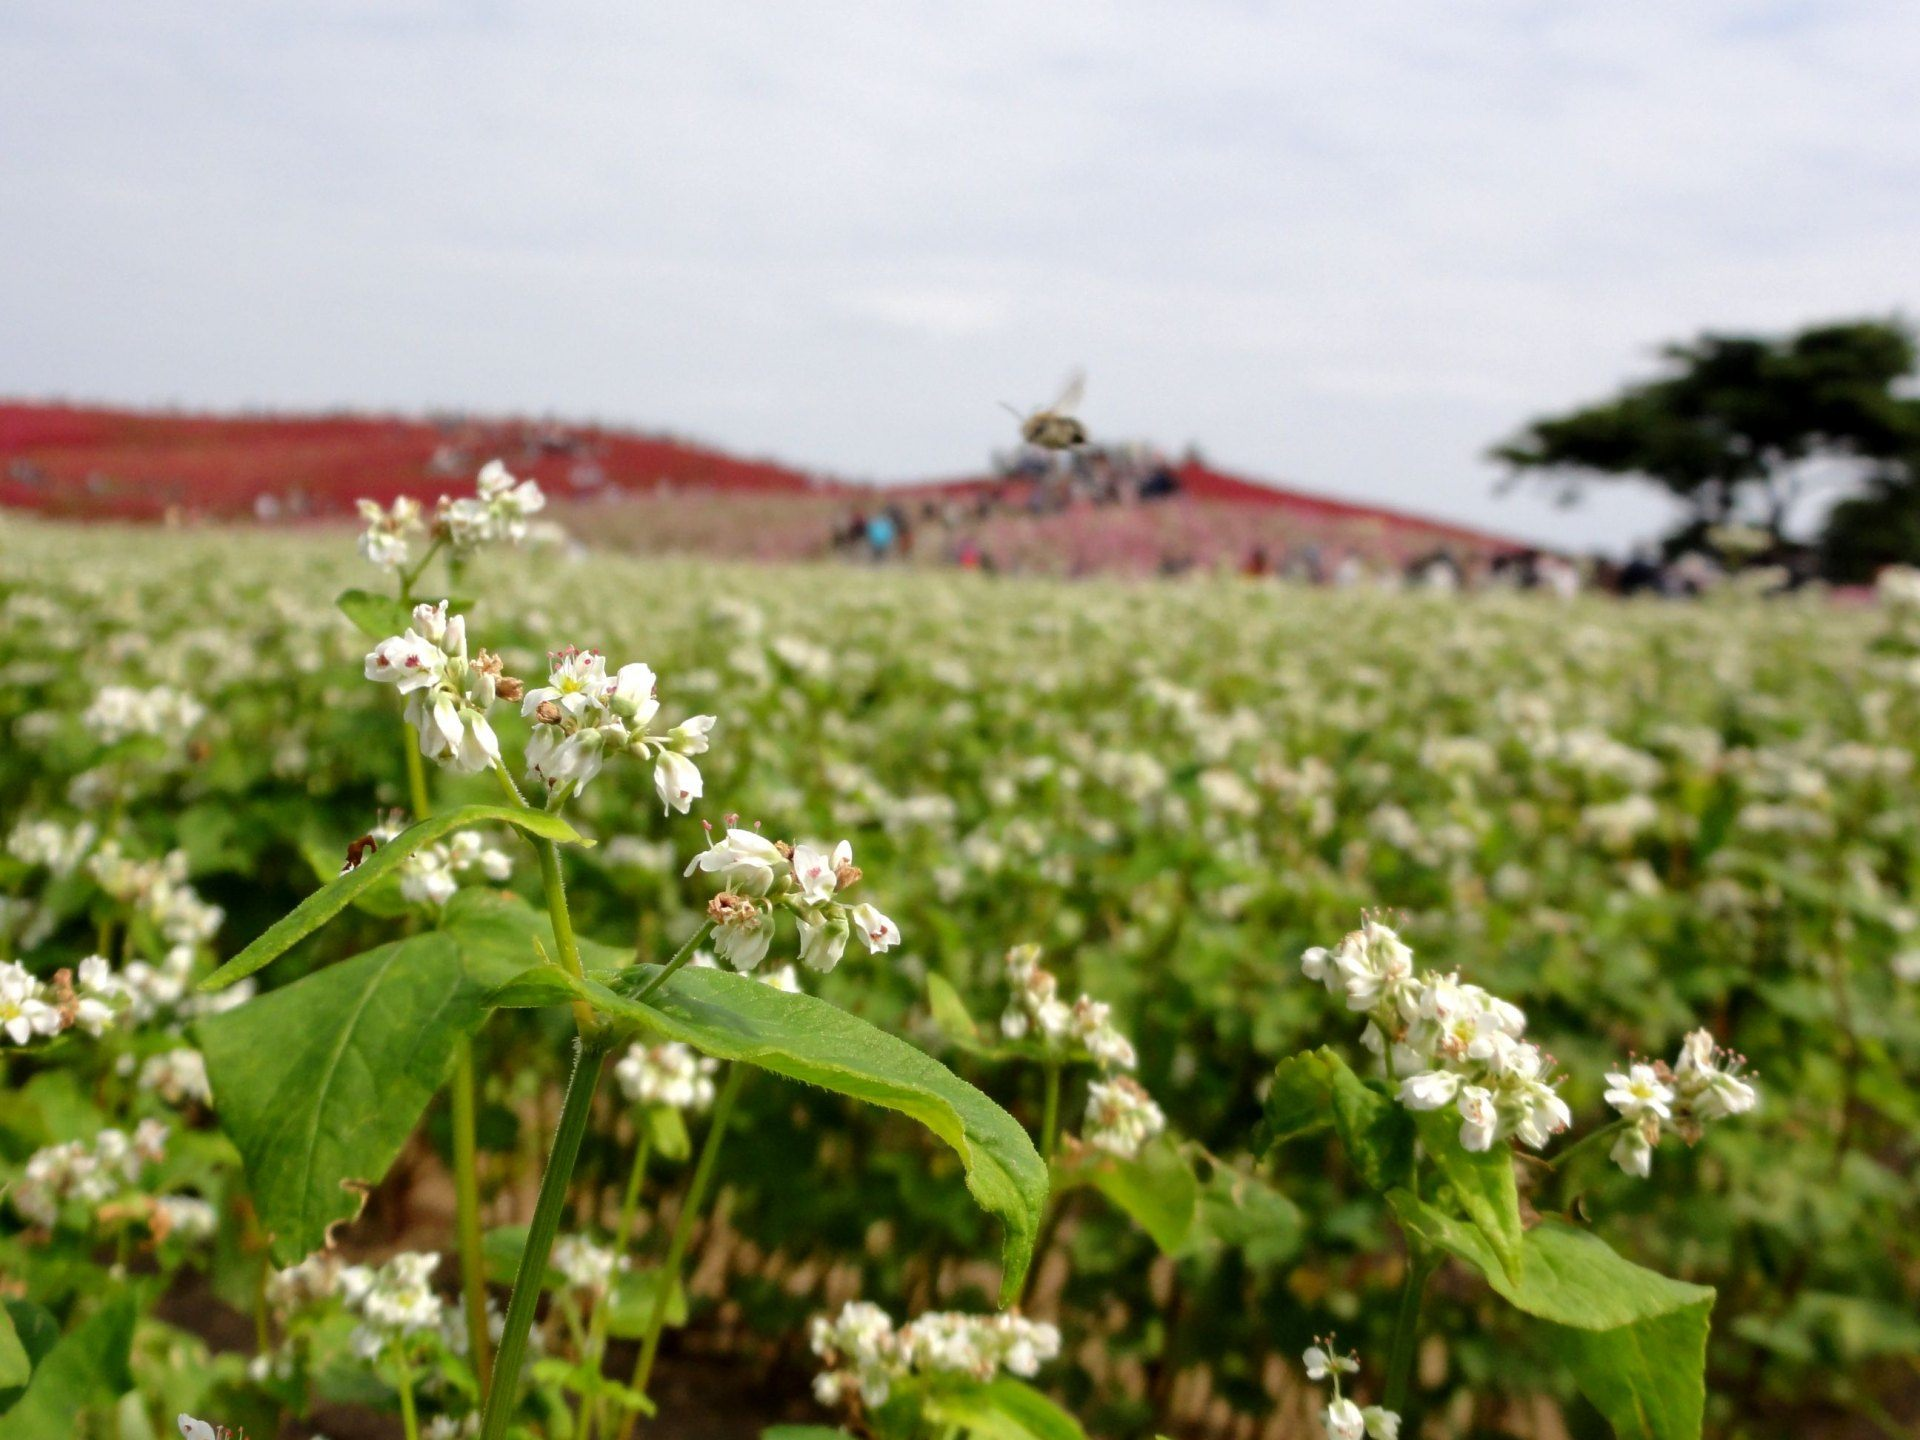 The buckwheat flower is white, beautiful and simple without strong smell.